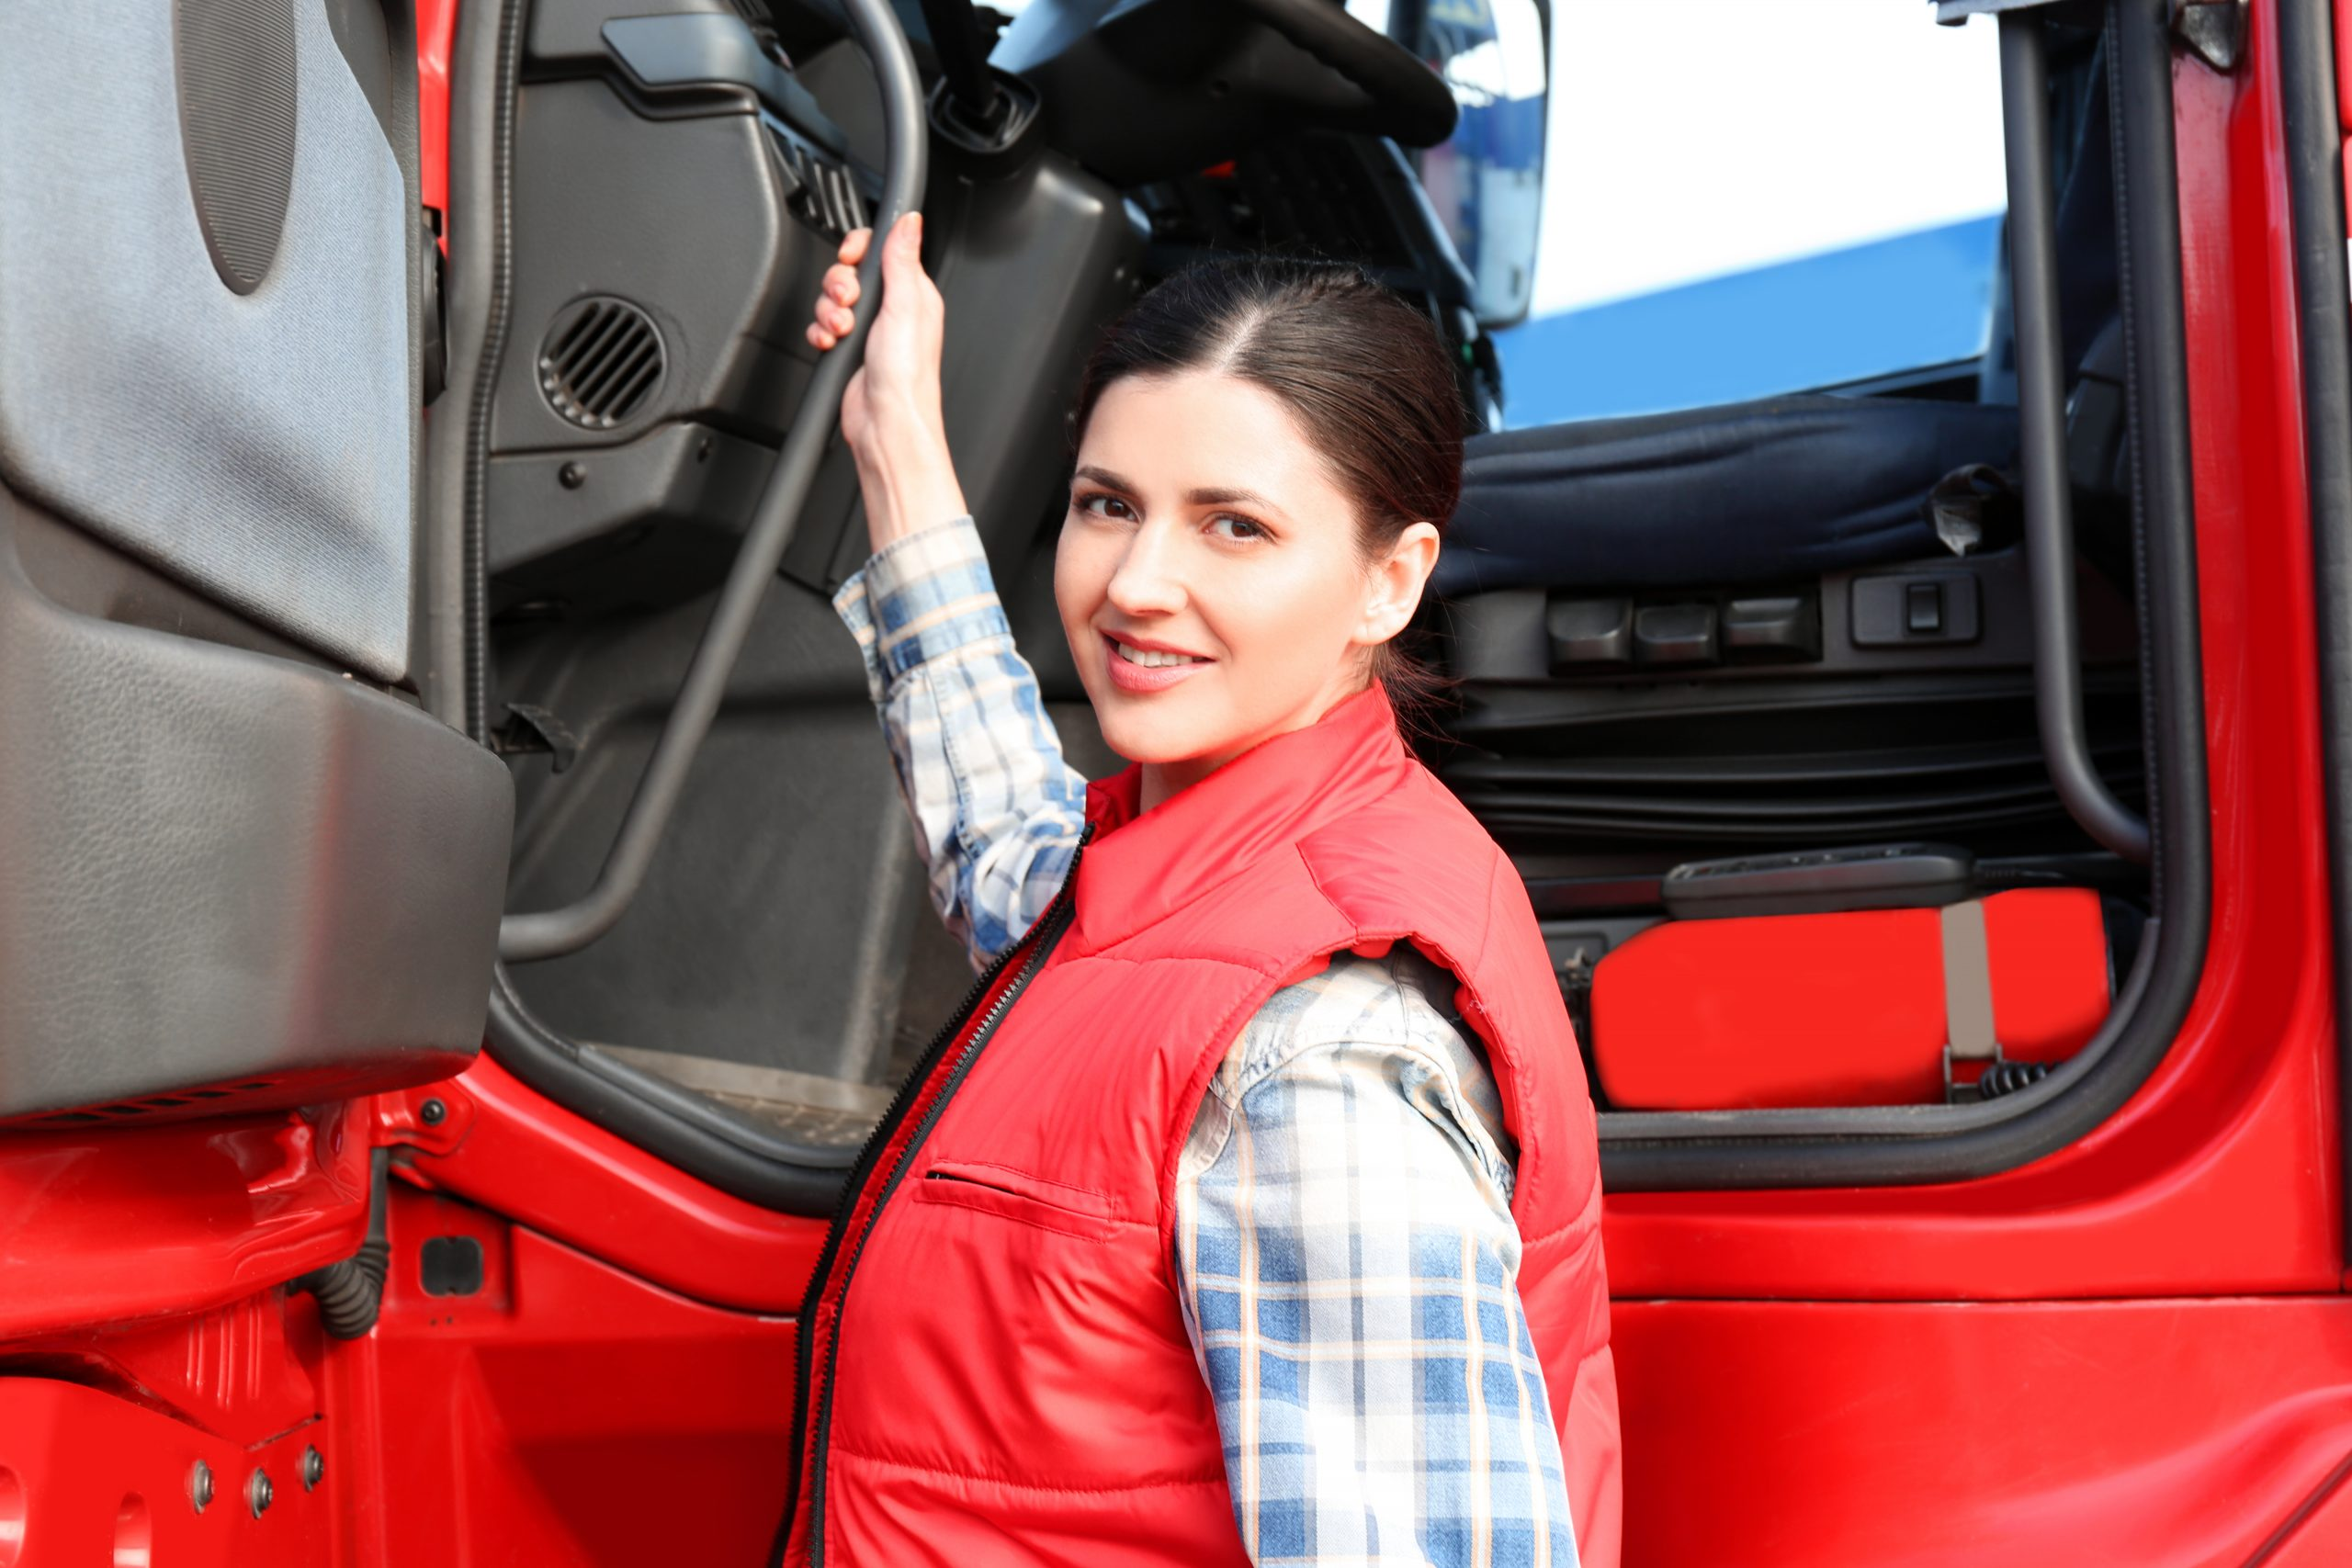 Drive your career at HGV Academy – Shortage of Drivers is impacting suppliers